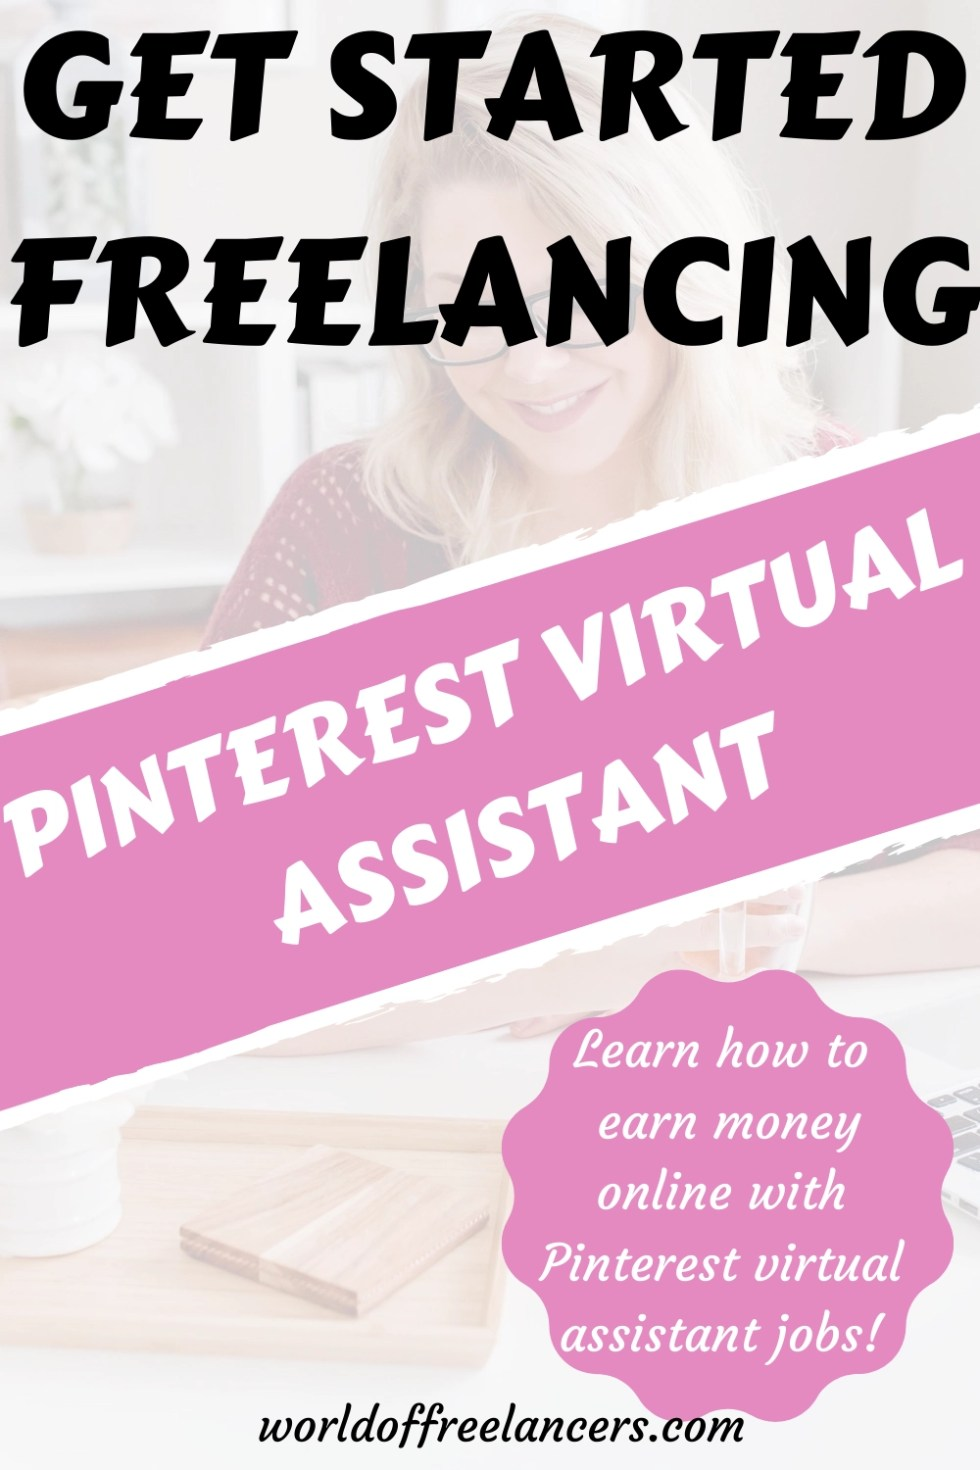 Pinterest image of smiling blonde woman at laptop with text get started freelancing Pinterest virtual assistant